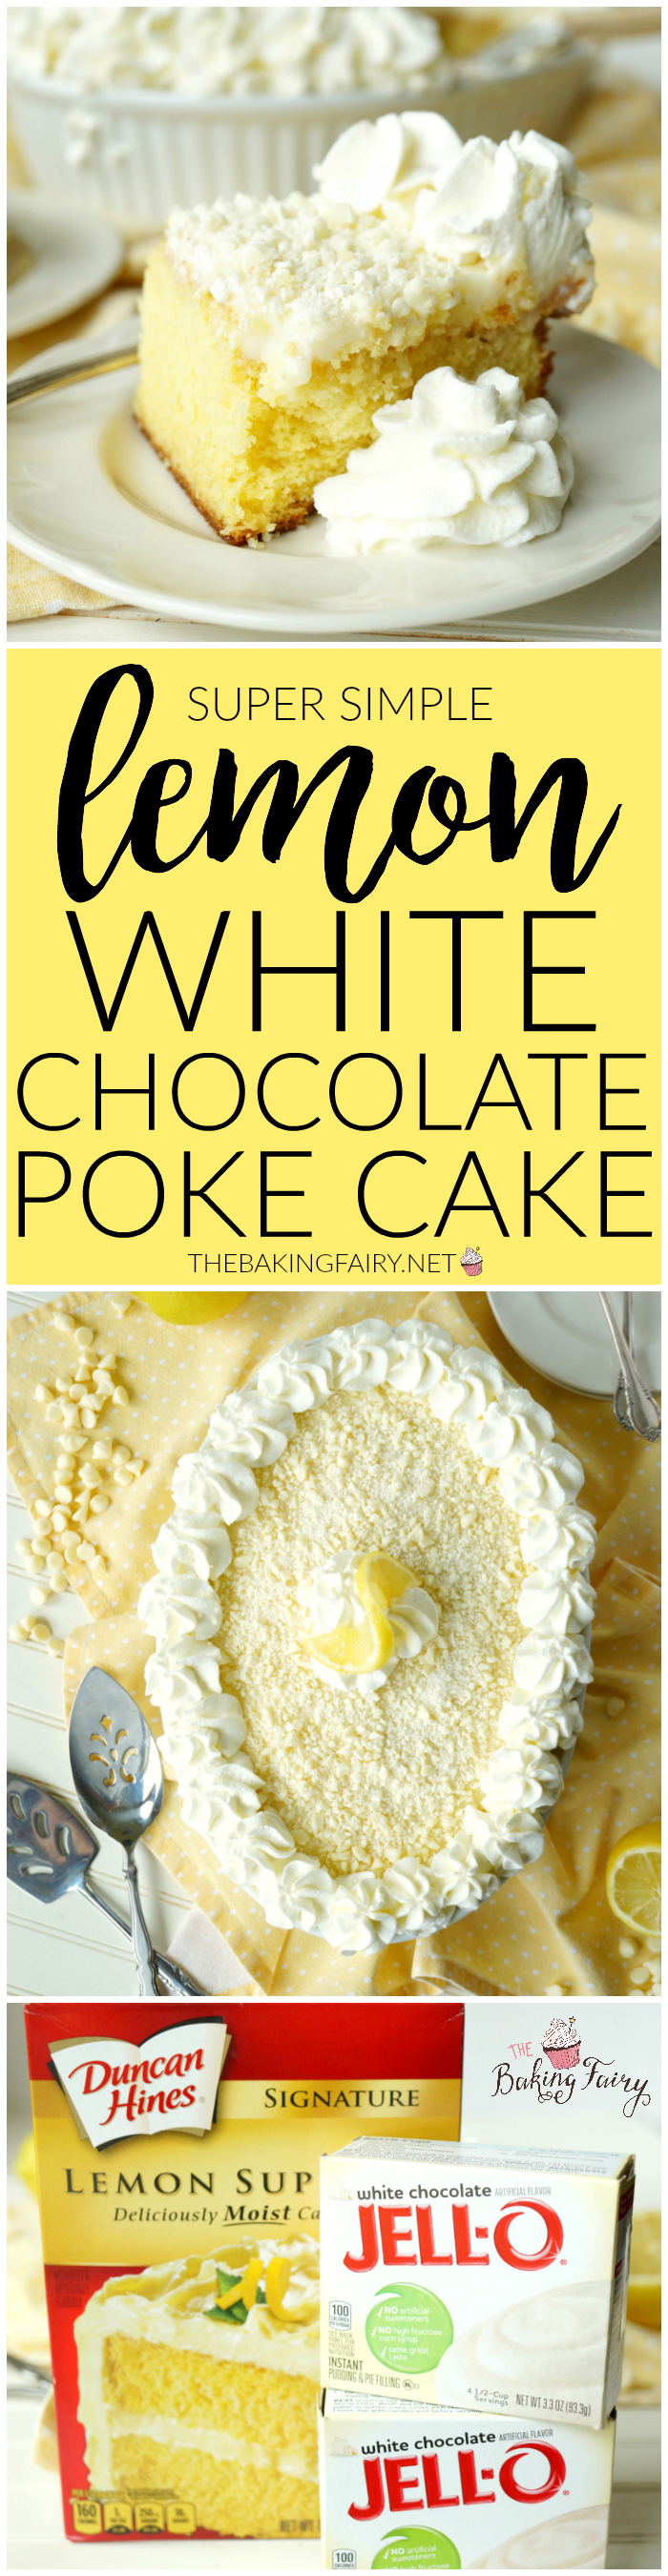 lemon white chocolate poke cake | The Baking Fairy